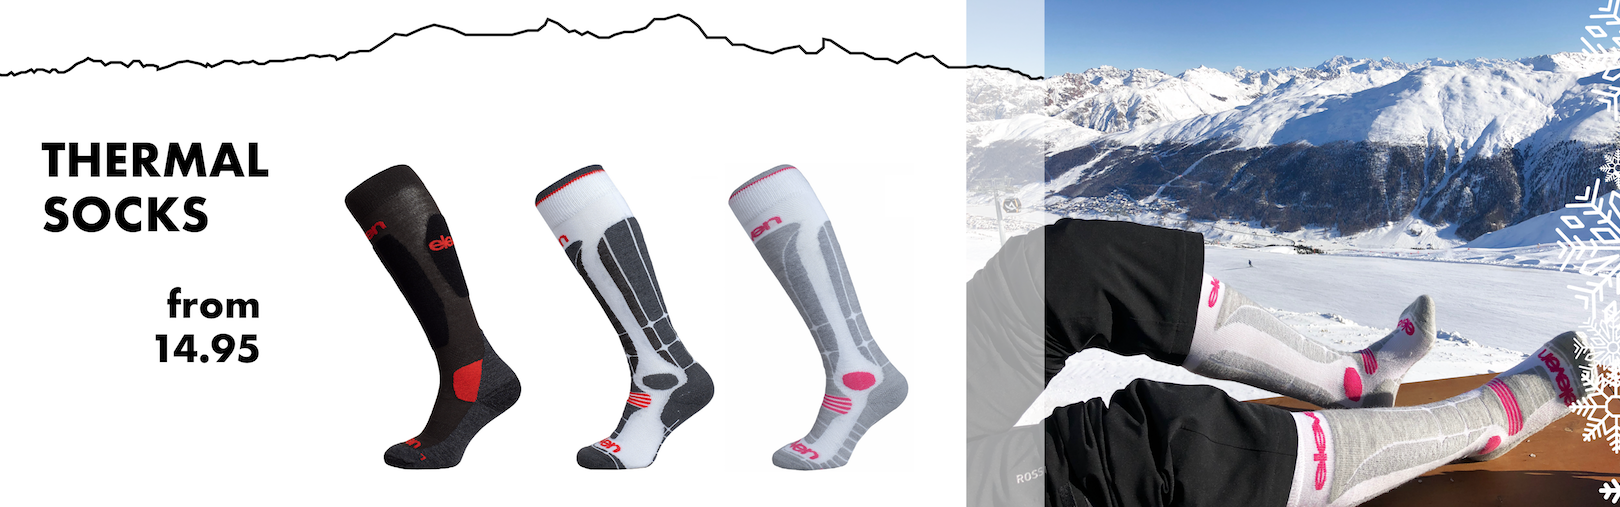 Warm winter socks for skiing and other activities during the cold days of the sports year